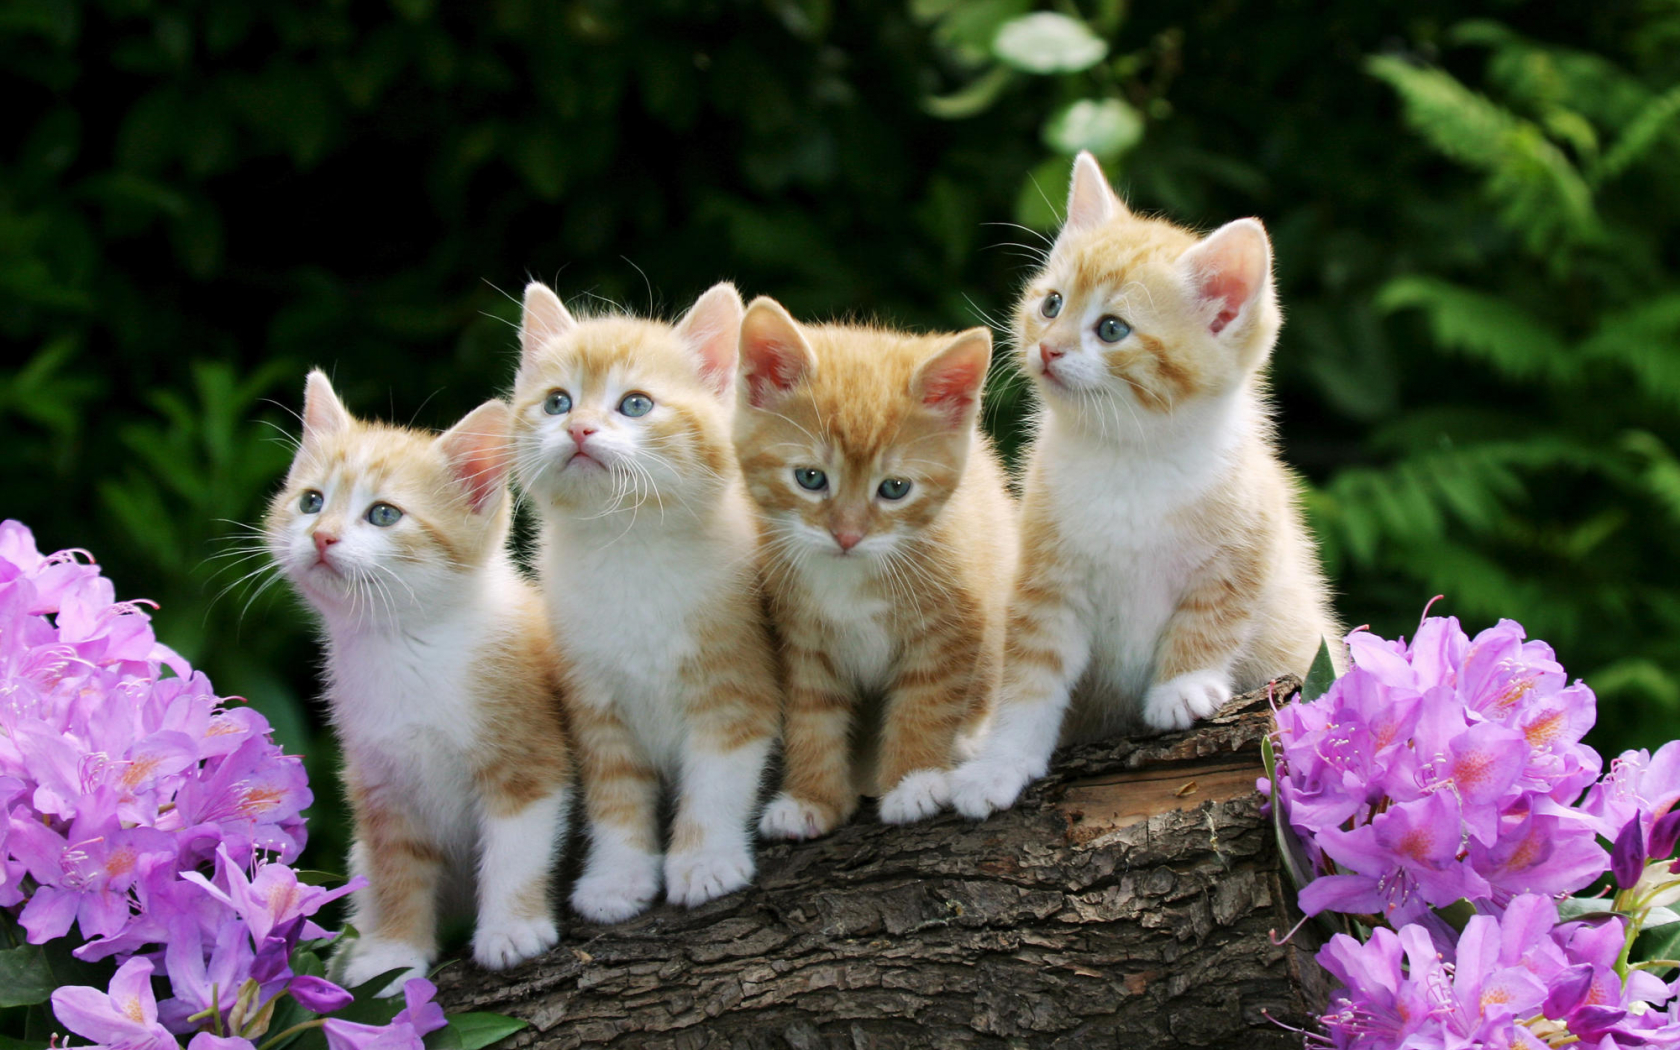 Free Download Cute Baby Cats Wallpaper 2000x1333 For Your Desktop Mobile Tablet Explore 48 Baby Kitten Wallpapers Cute Kittens Wallpapers Free Kittens Wallpaper For Desktop Cute Kitten Wallpapers For Desktop